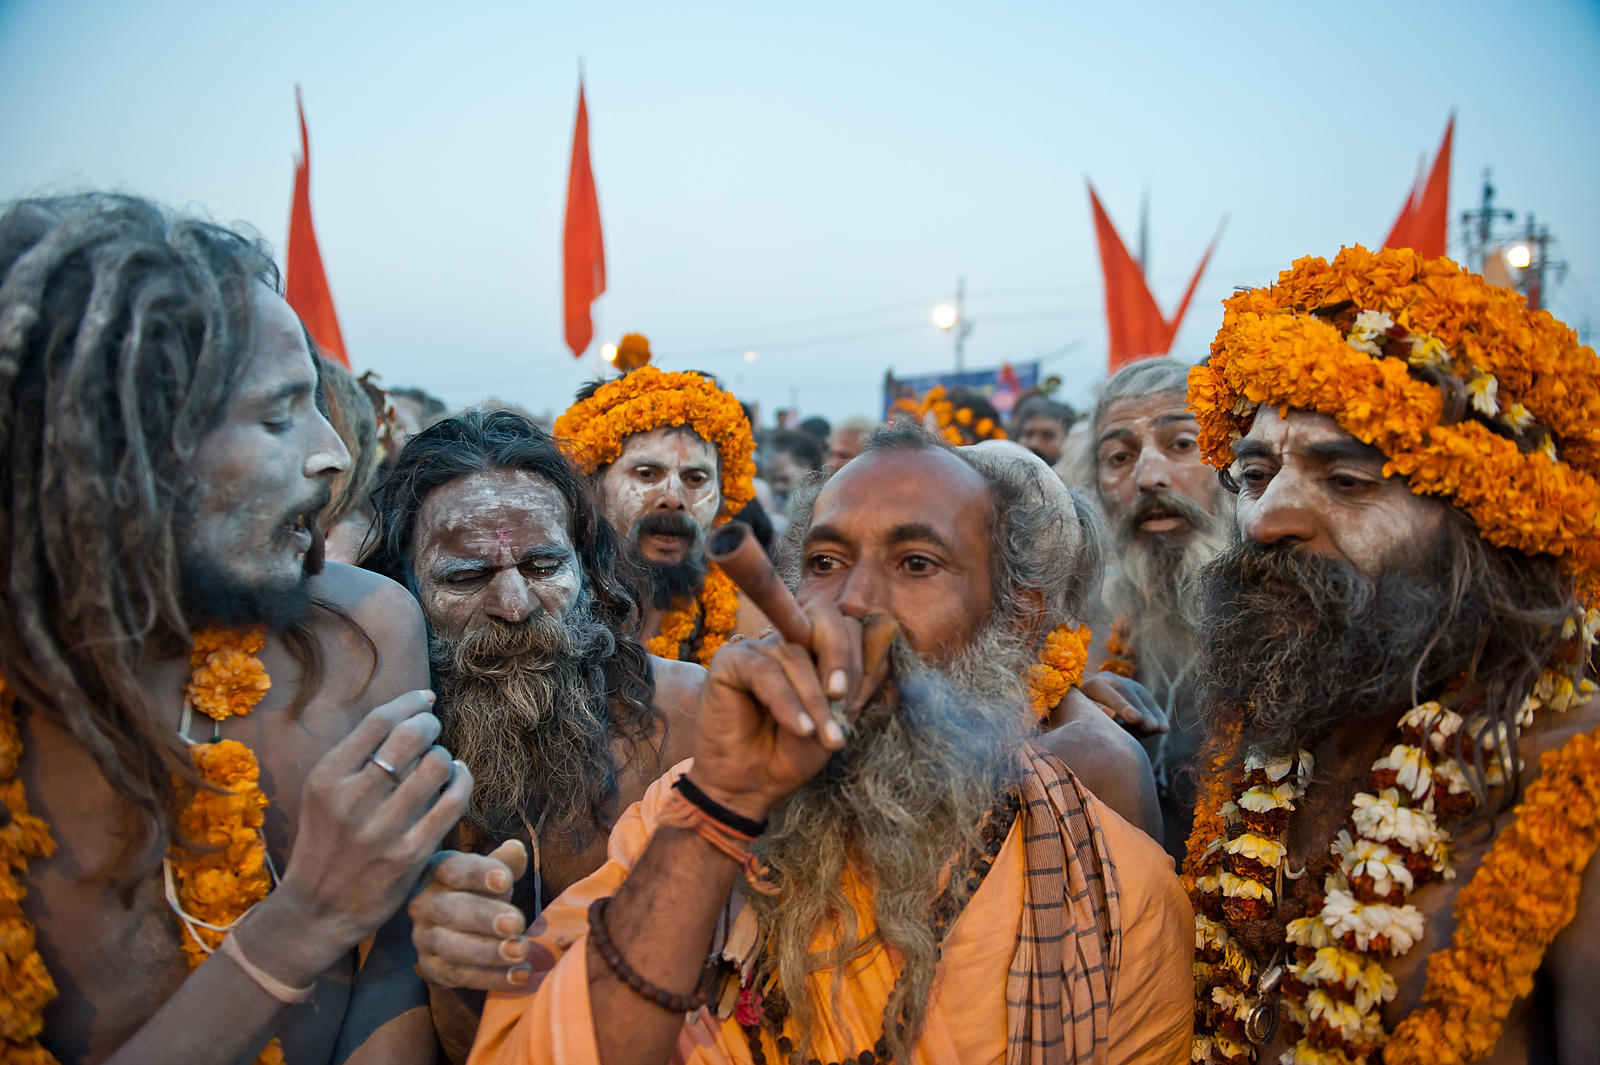 A saint smokes a pipe while others wait for their turn. This photograph was shot during a procession at the Kumbh Mela in All...